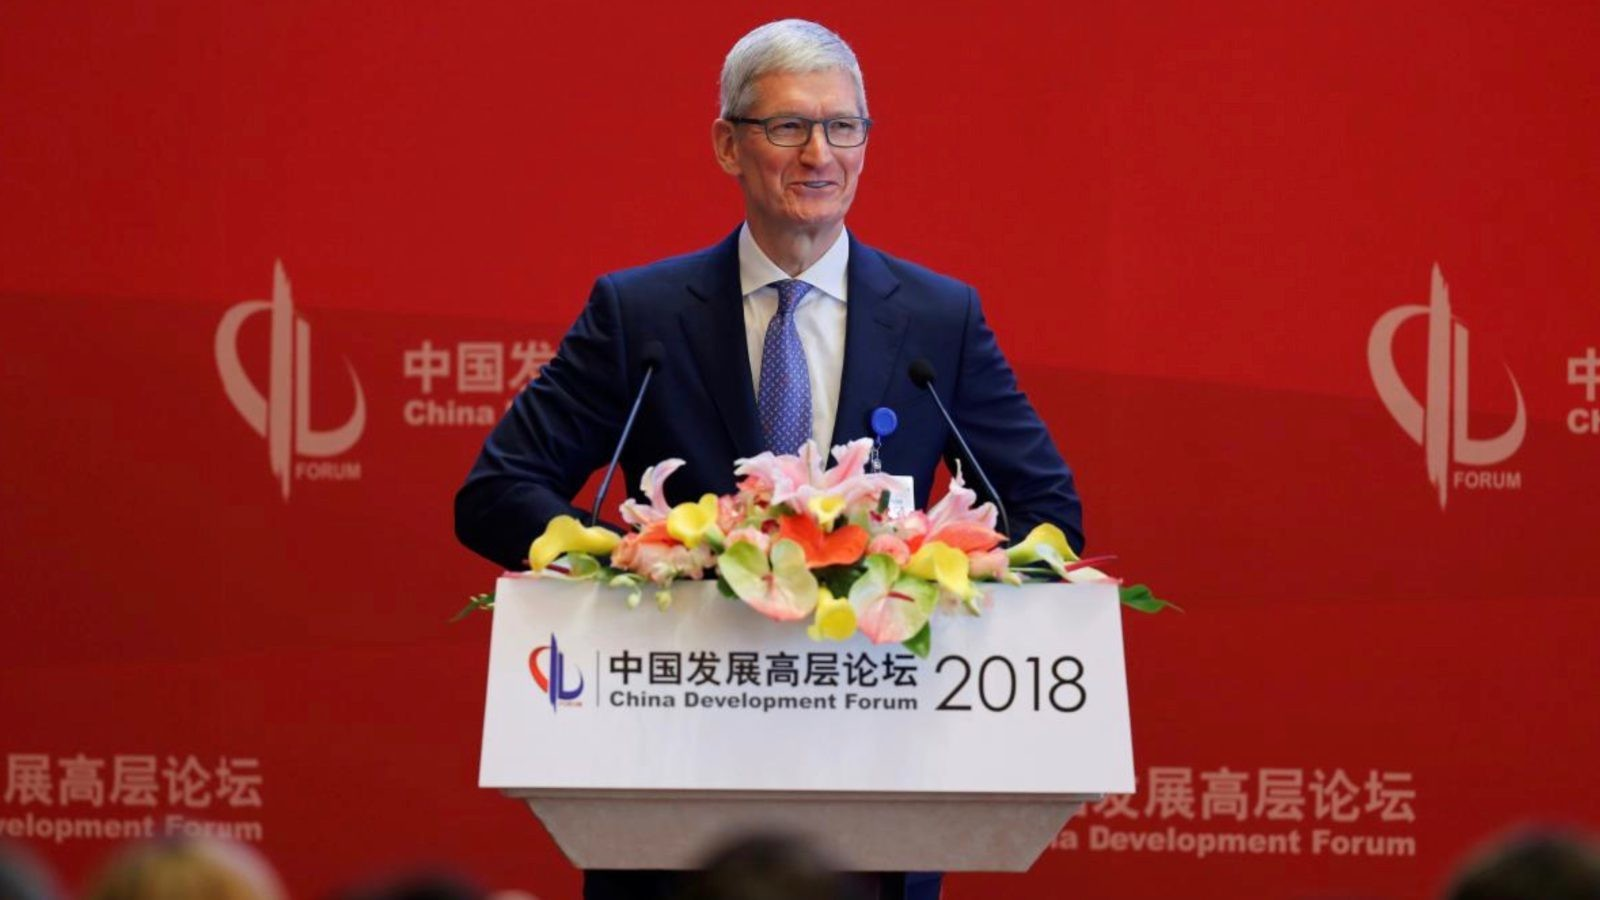 Tim Cook kicks off China Development Forum, talks trade war concerns and more